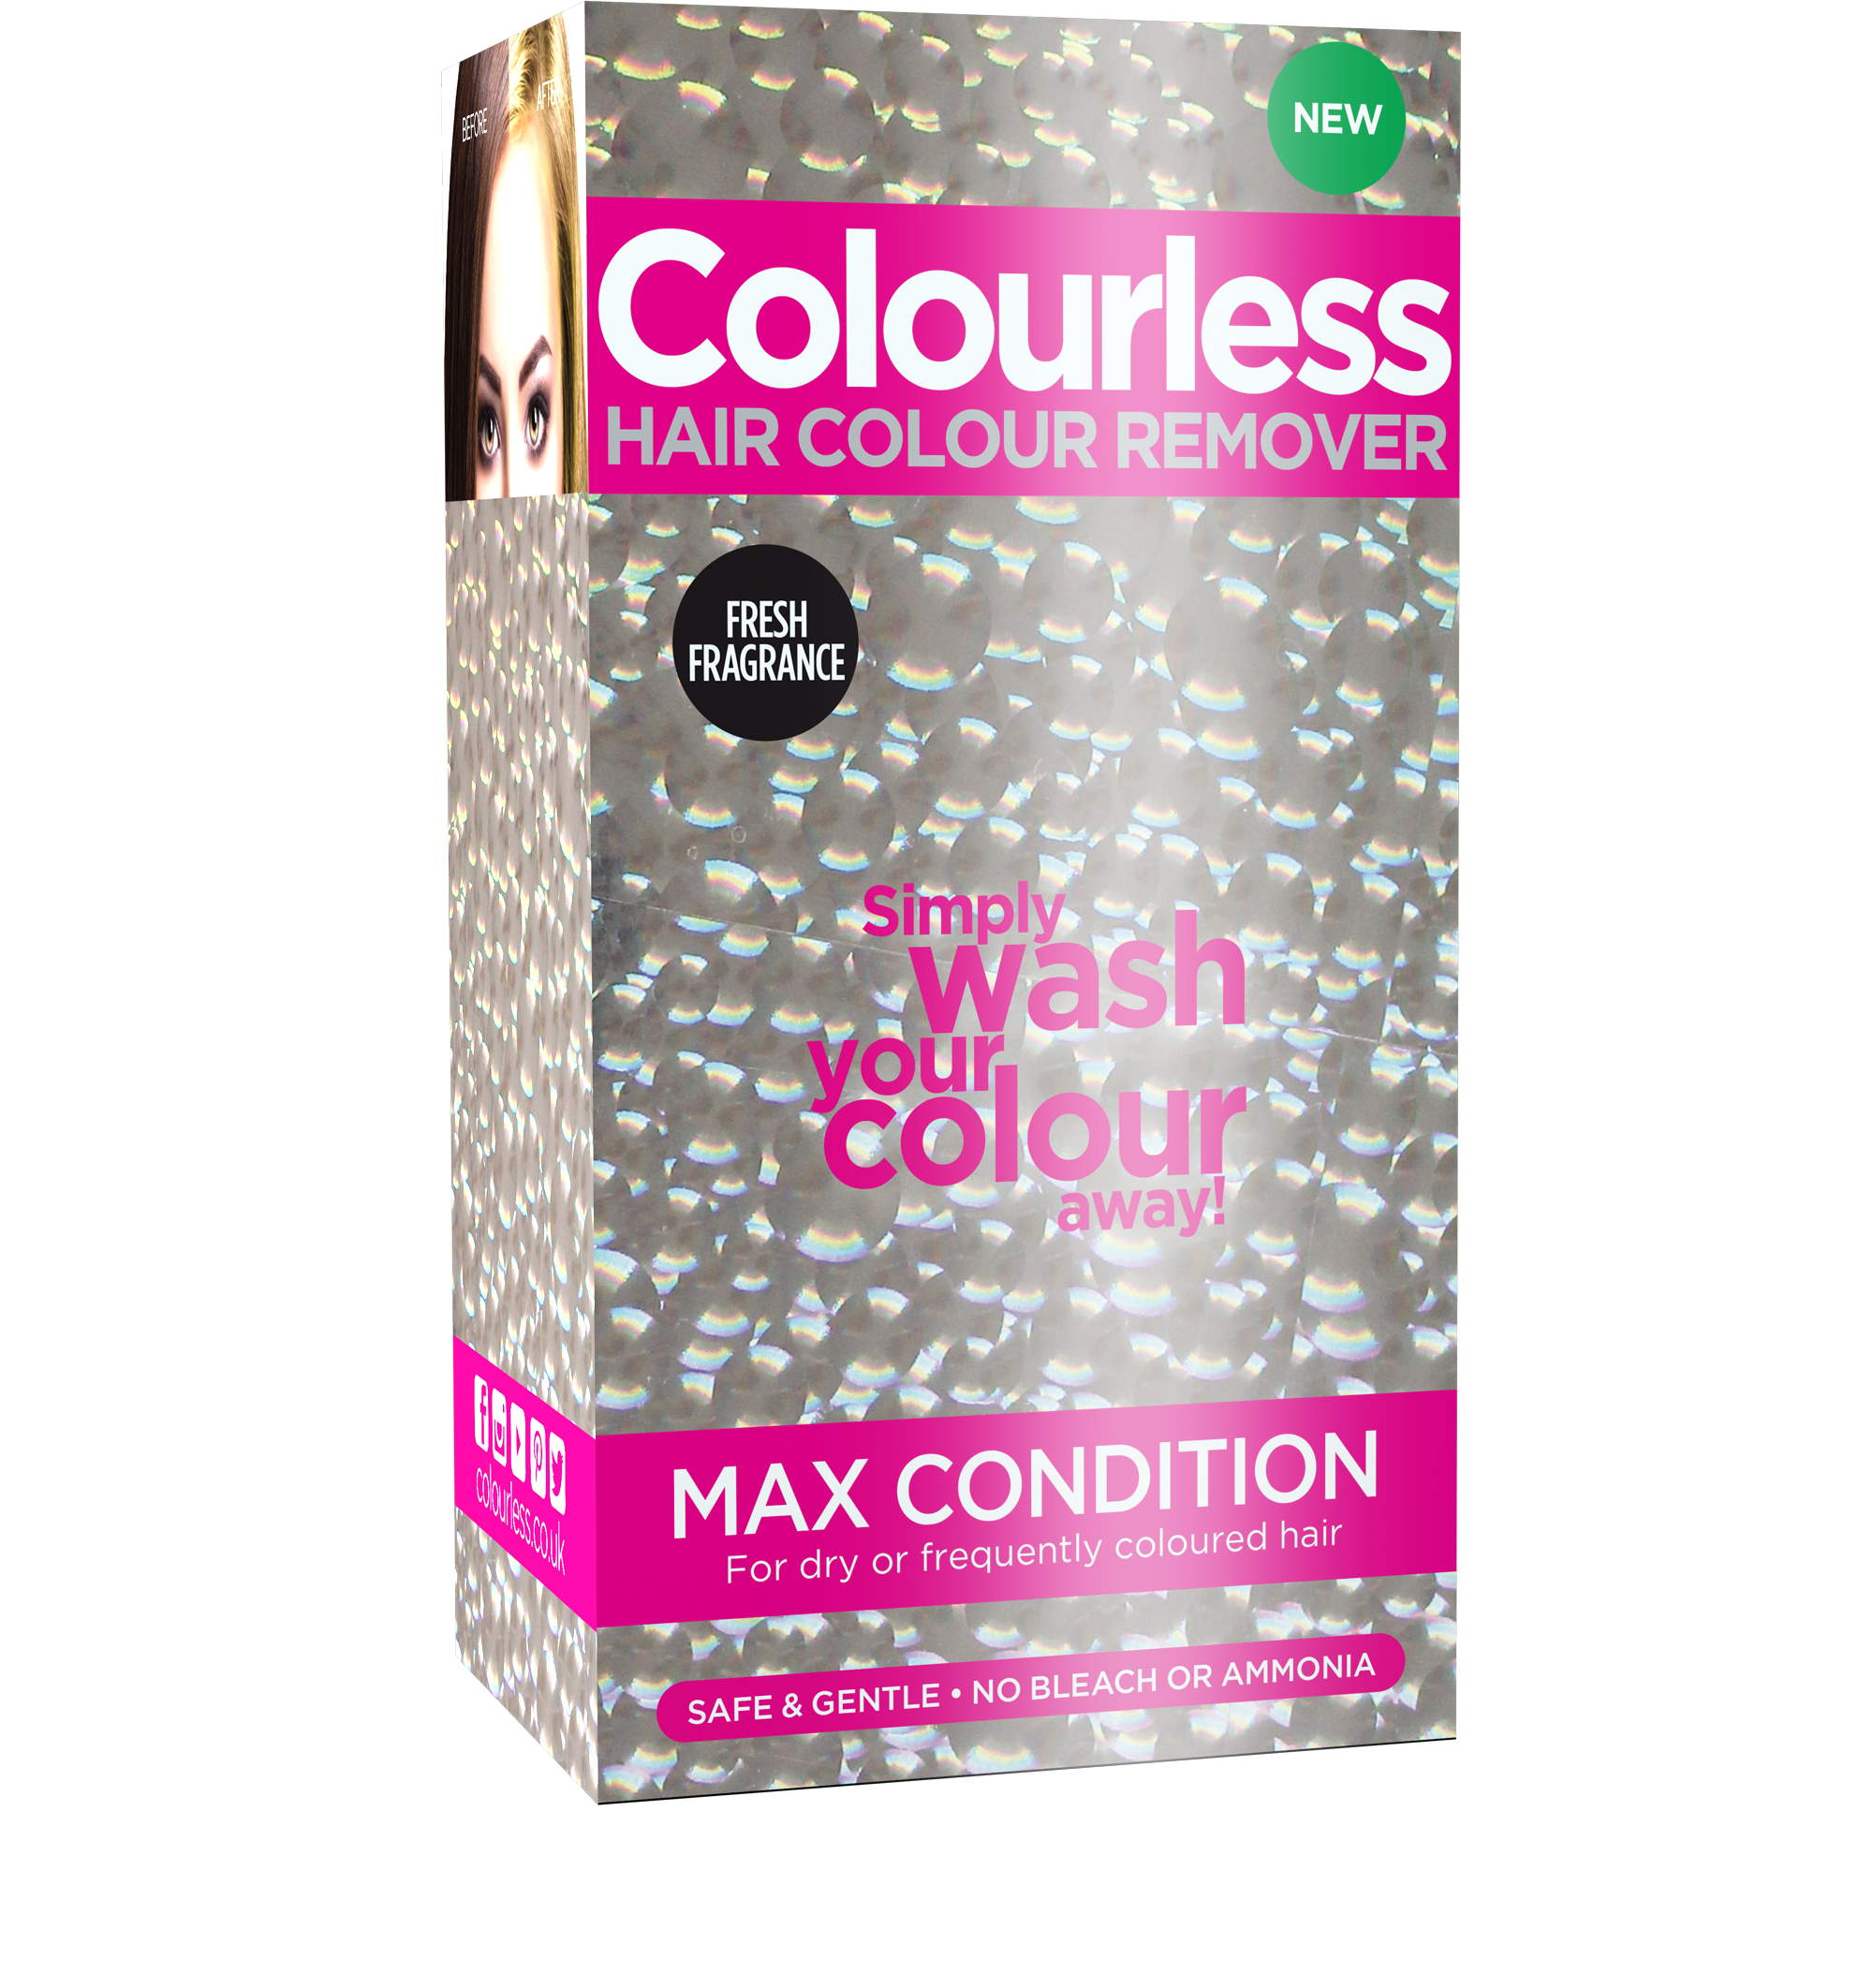 Colourless Max Condition